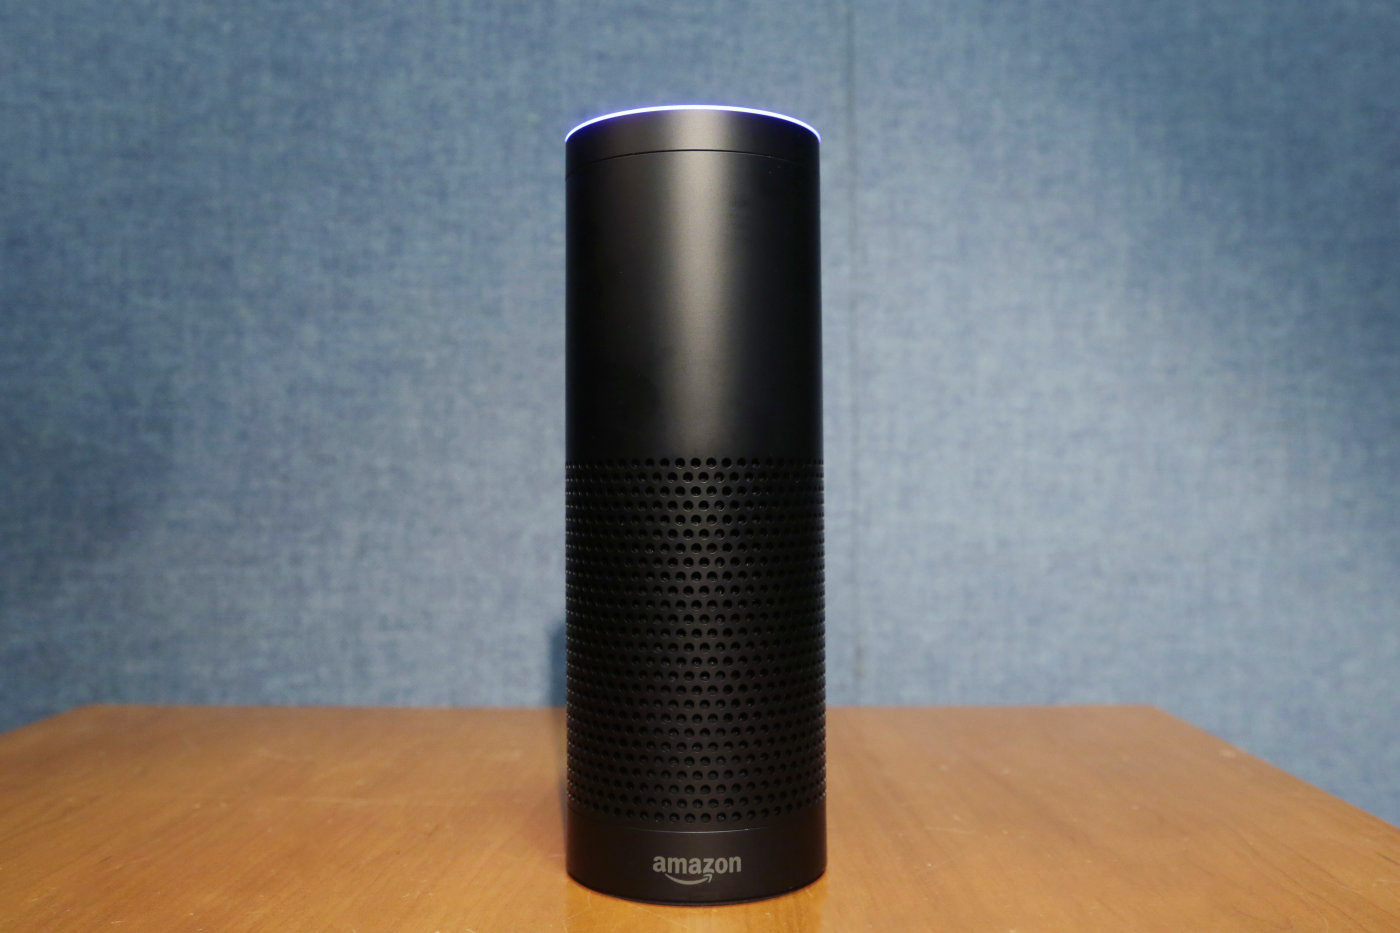 Amazon Echo can tell you movie times and NFL scores